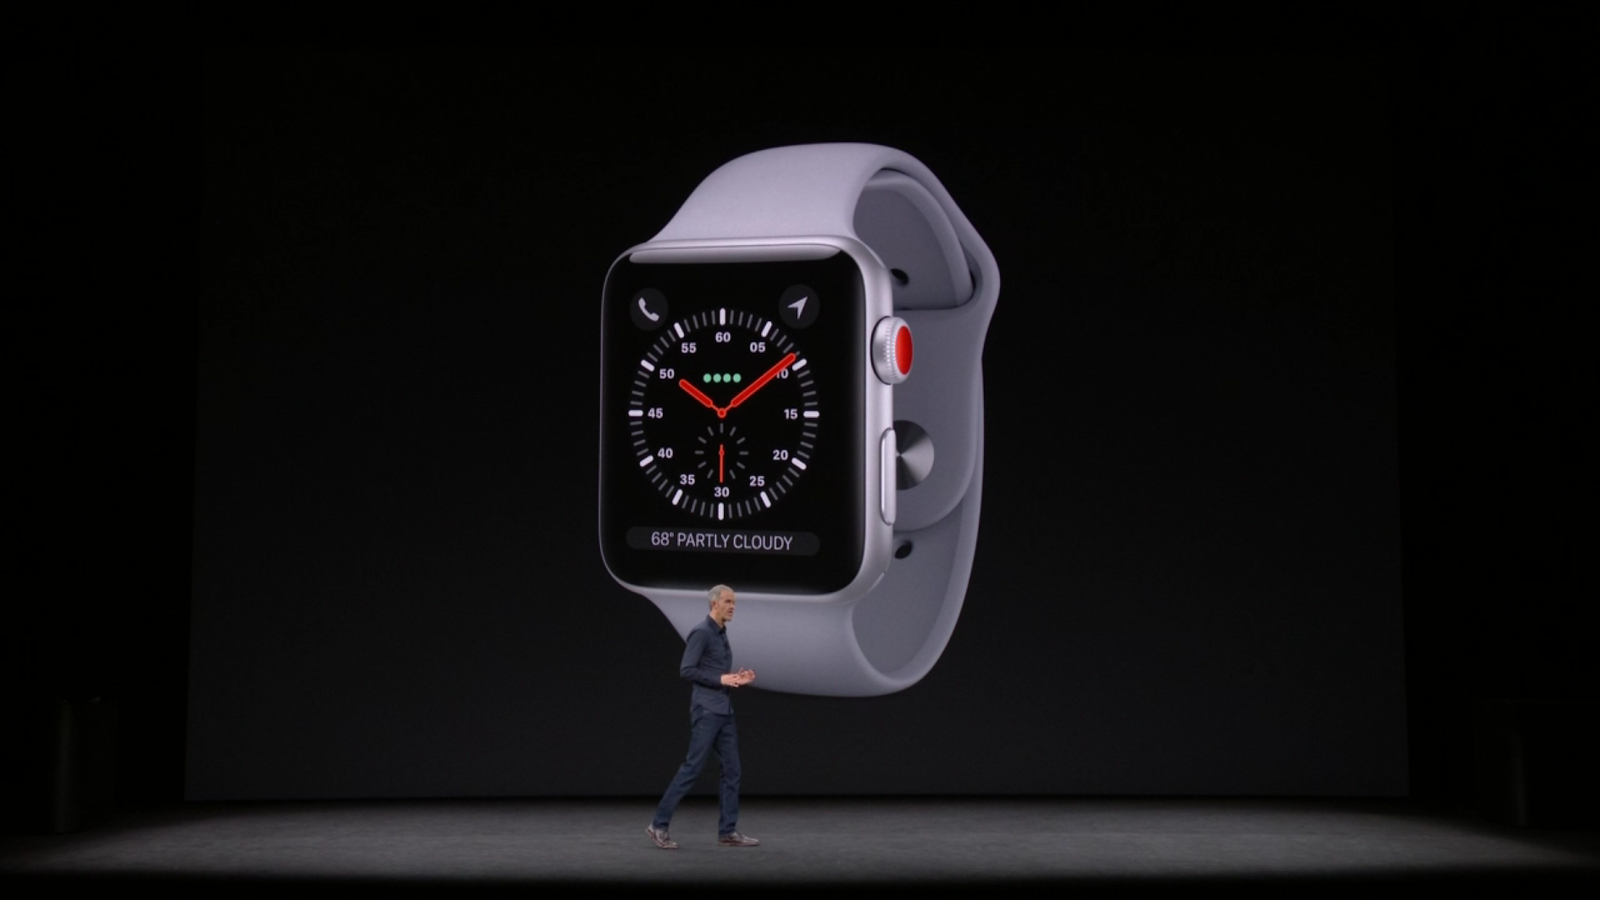 Apple today launches a brand new Apple Watch Series 3 with many new features like LTE connectivity, dual core processor.